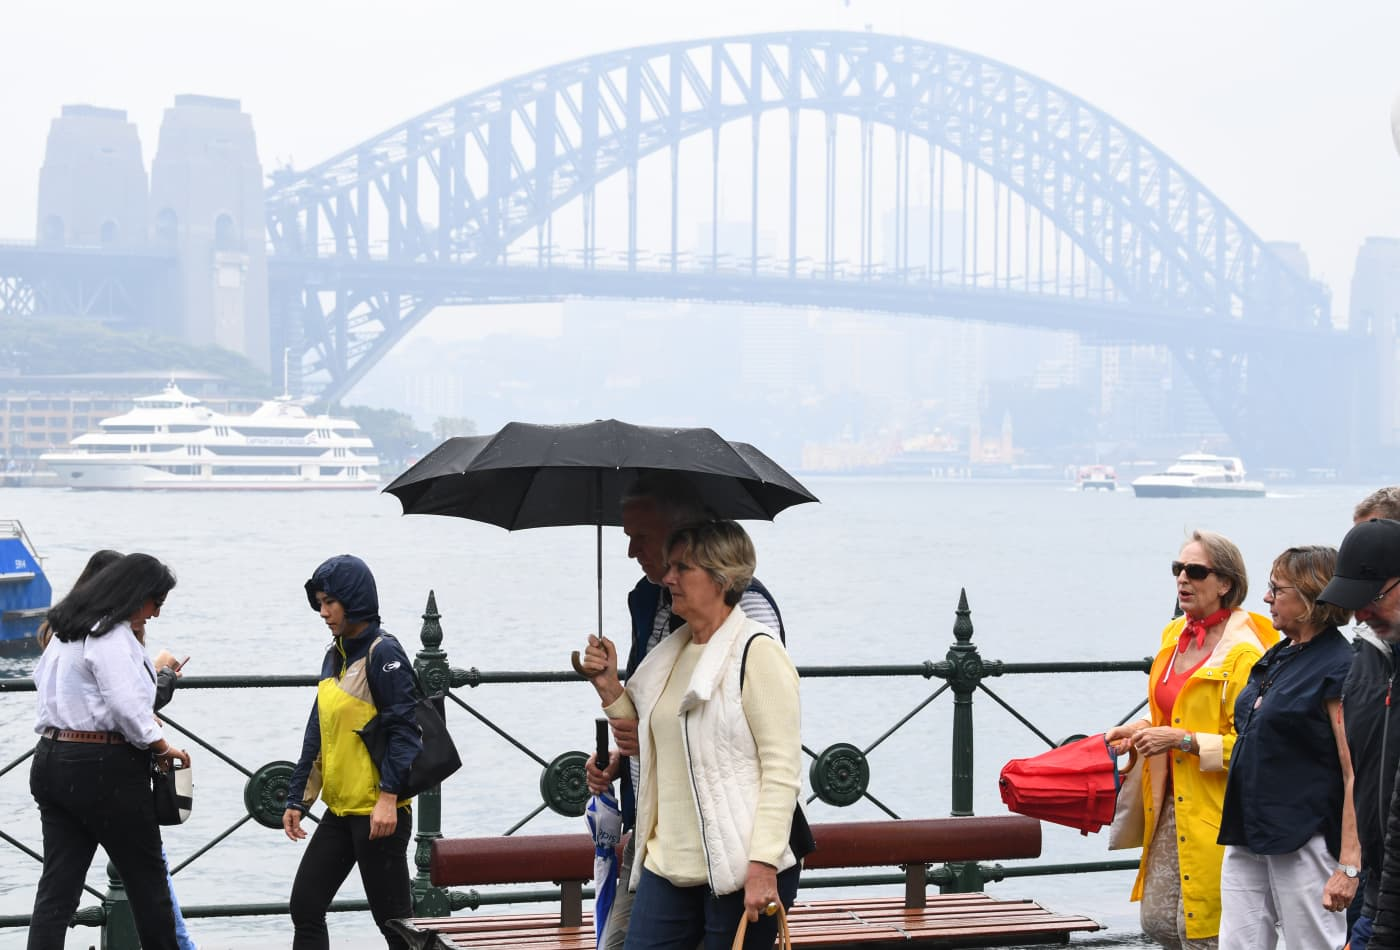 Floods, road closures in Australia as storms lash some bushfire-hit regions